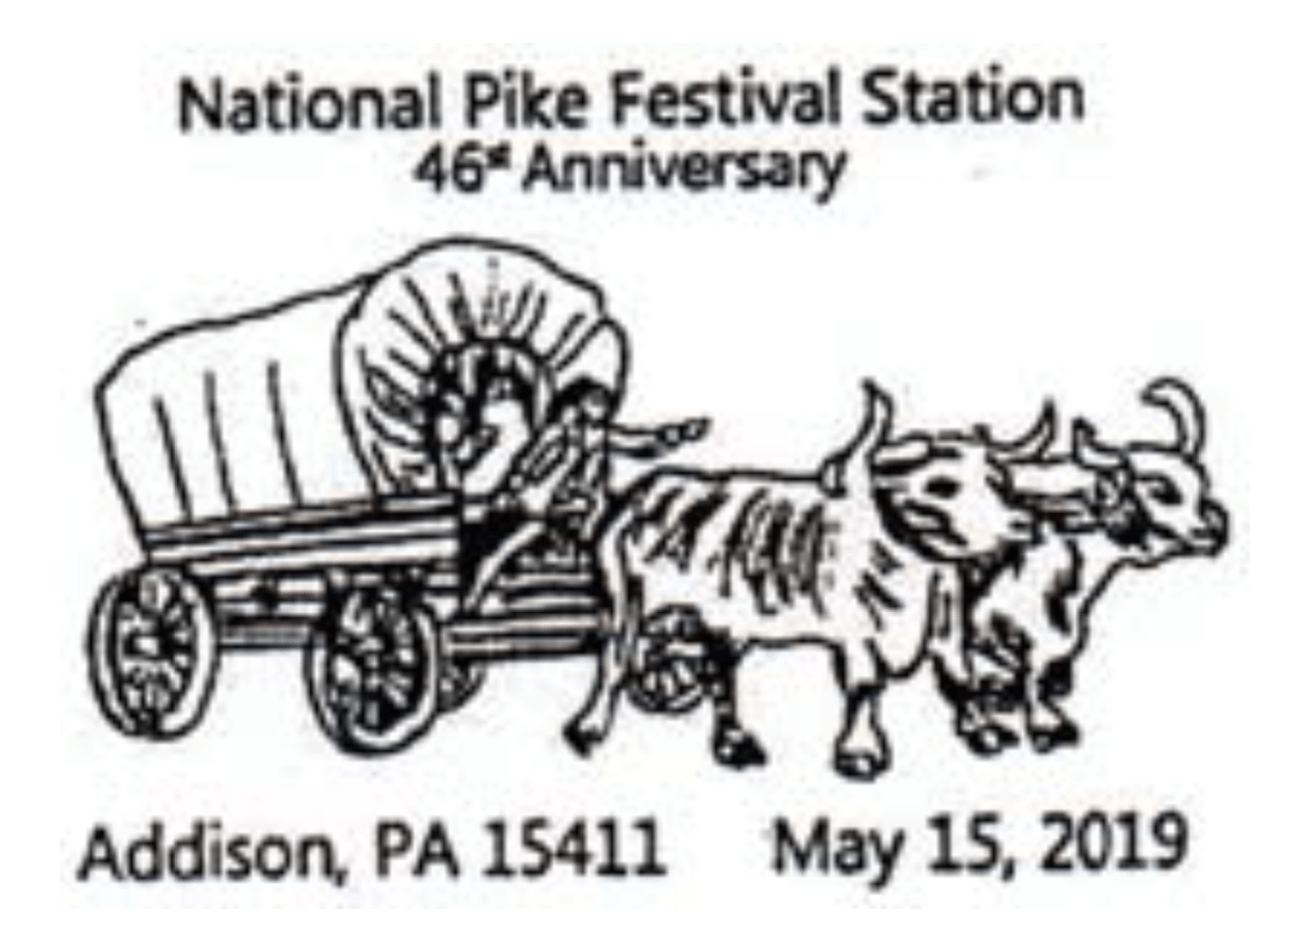 National Pike Festival Station Addison Pennsylvania